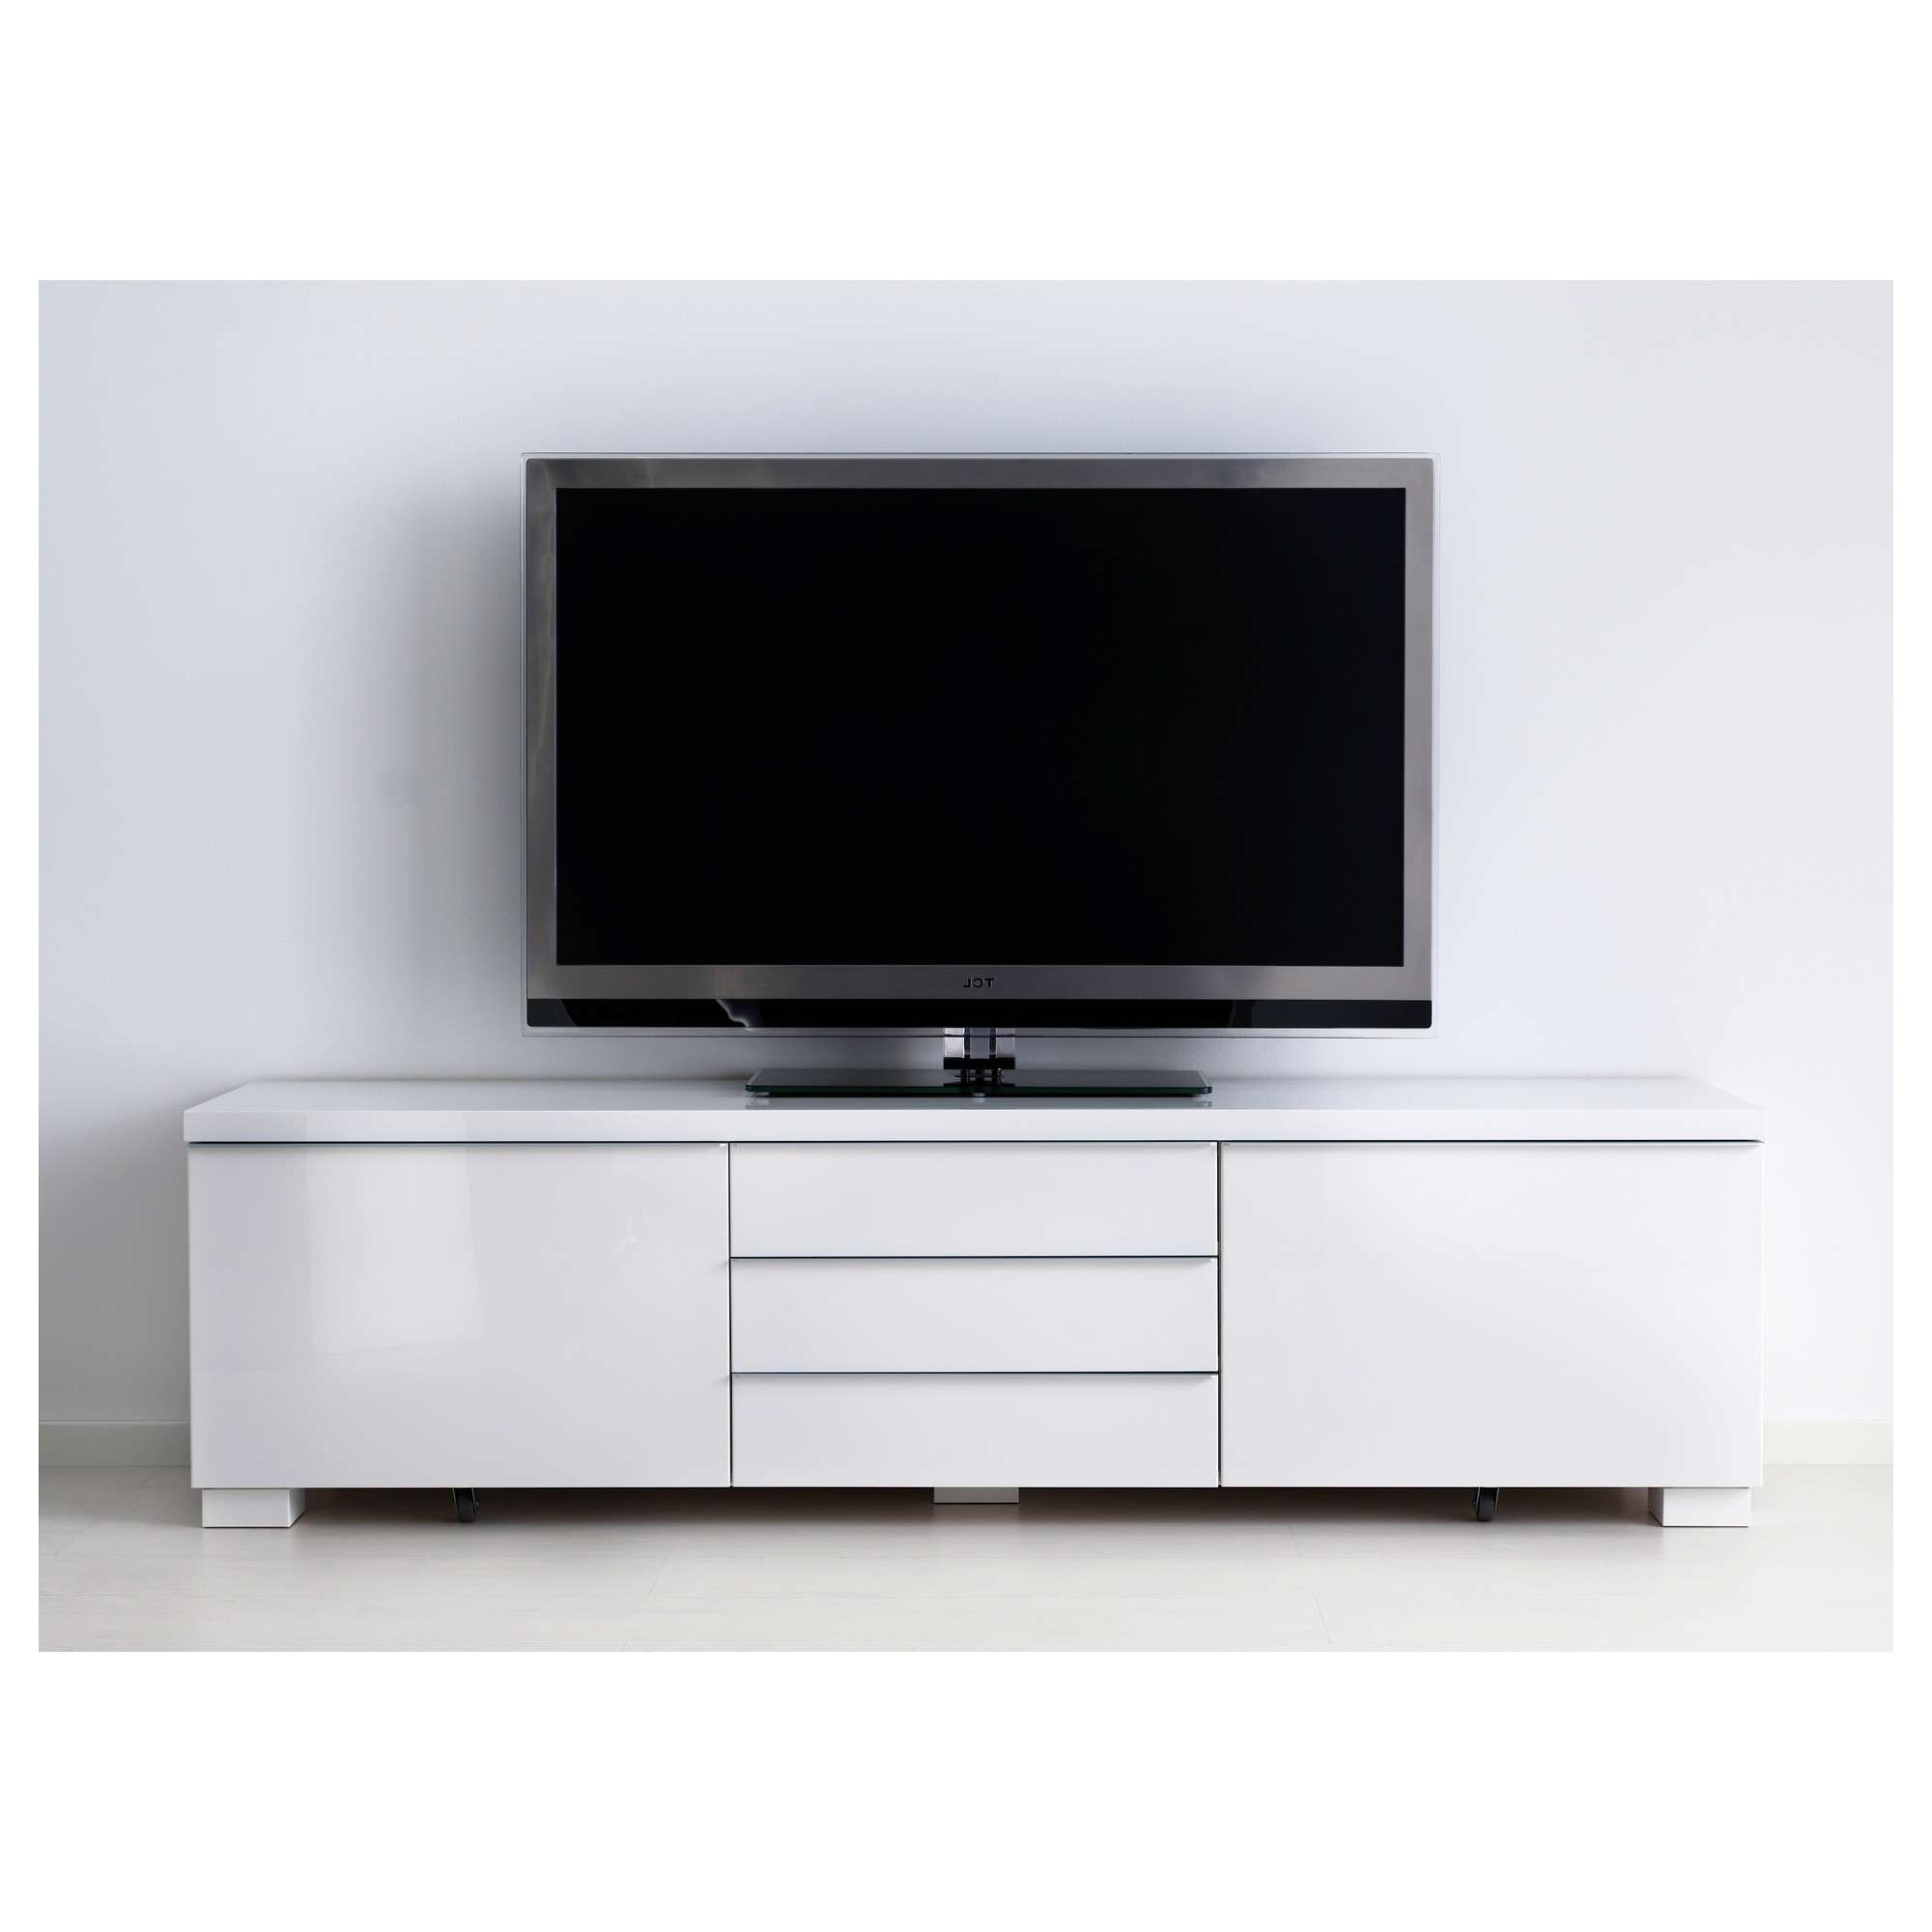 Simple Design White Tv Cabinet Bestå Burs Tv Unit Ikea – Cabinets For Gloss White Tv Stands (View 11 of 15)